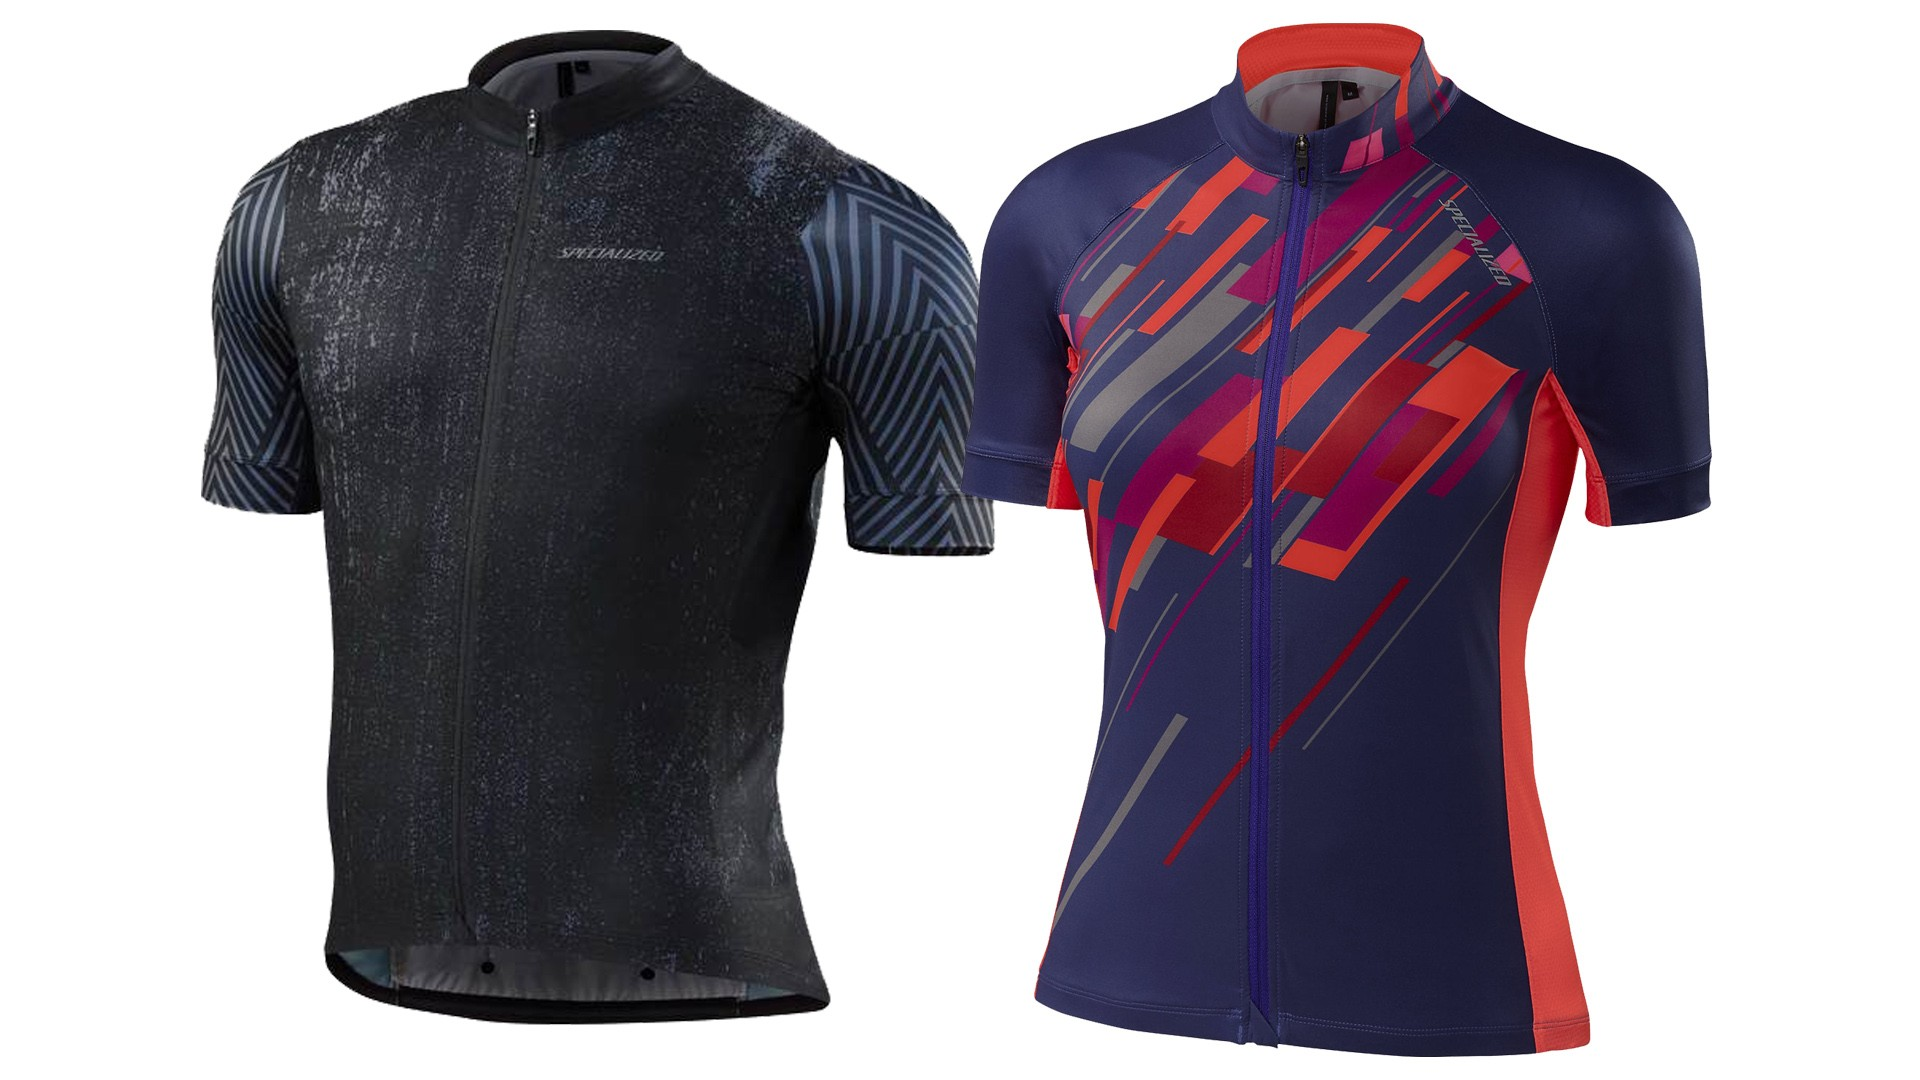 The RBX Pro jersey from Specialized comes in both a men's and women's version